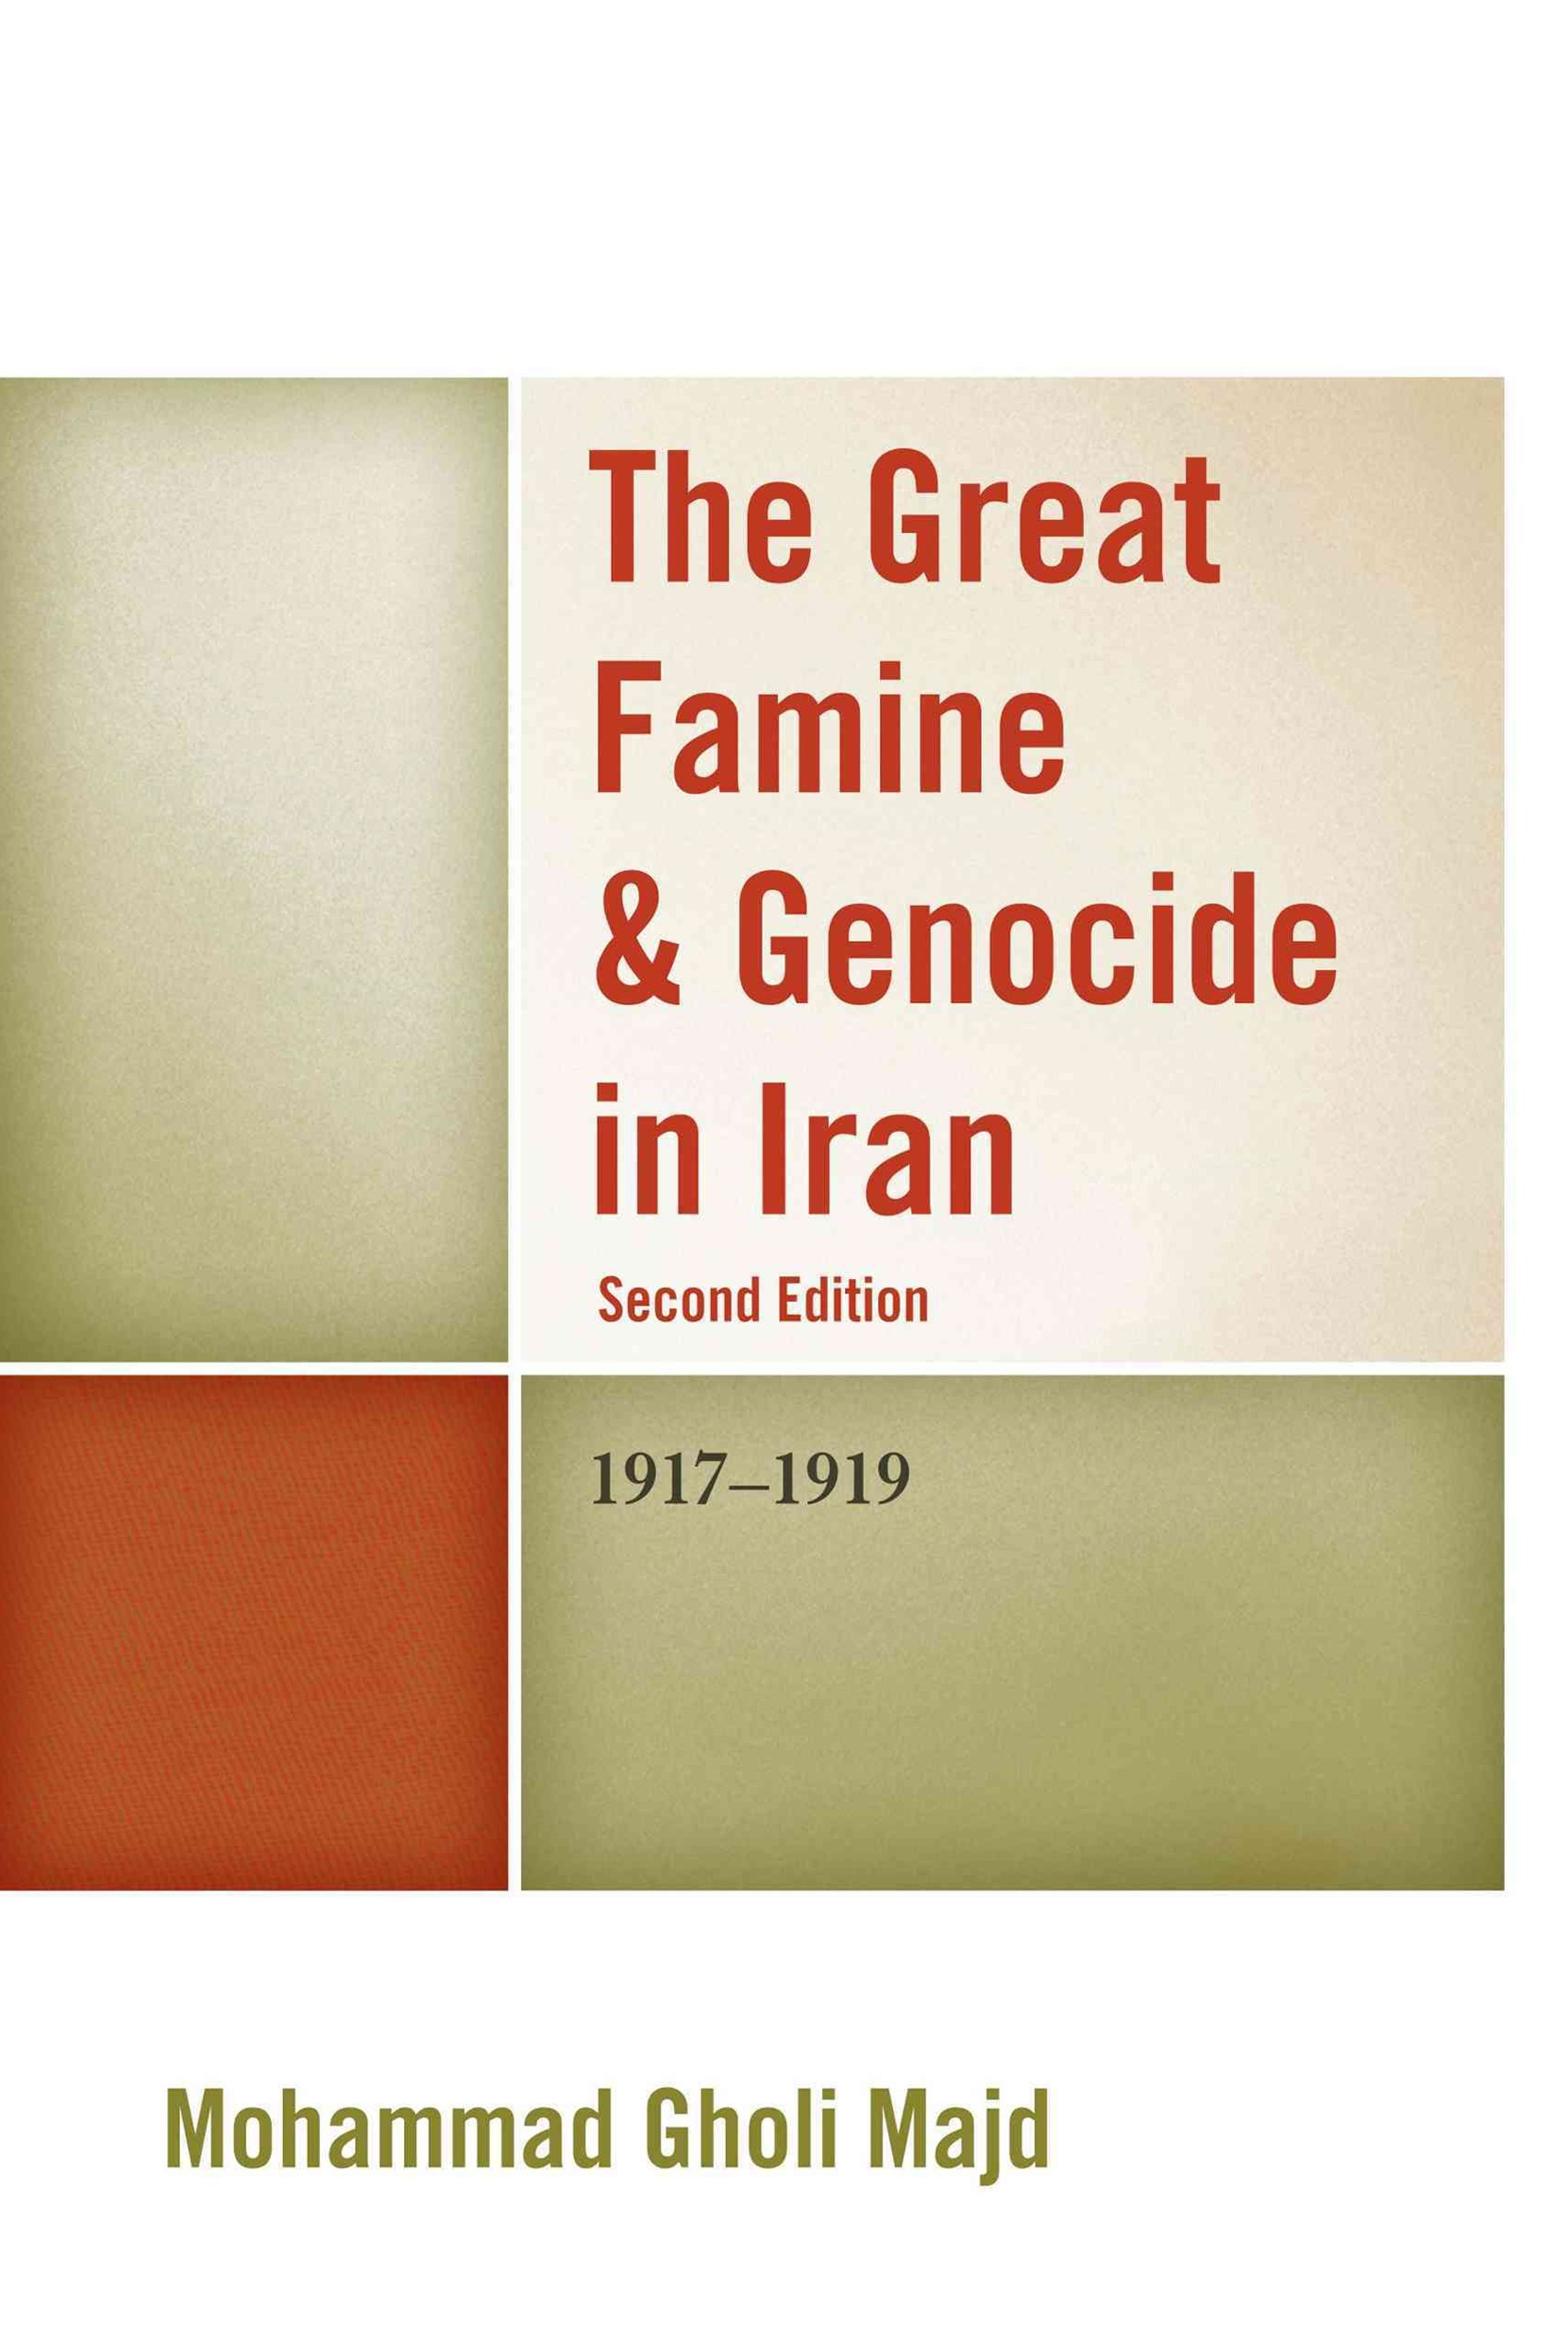 Great Famine & Genocide in Iran